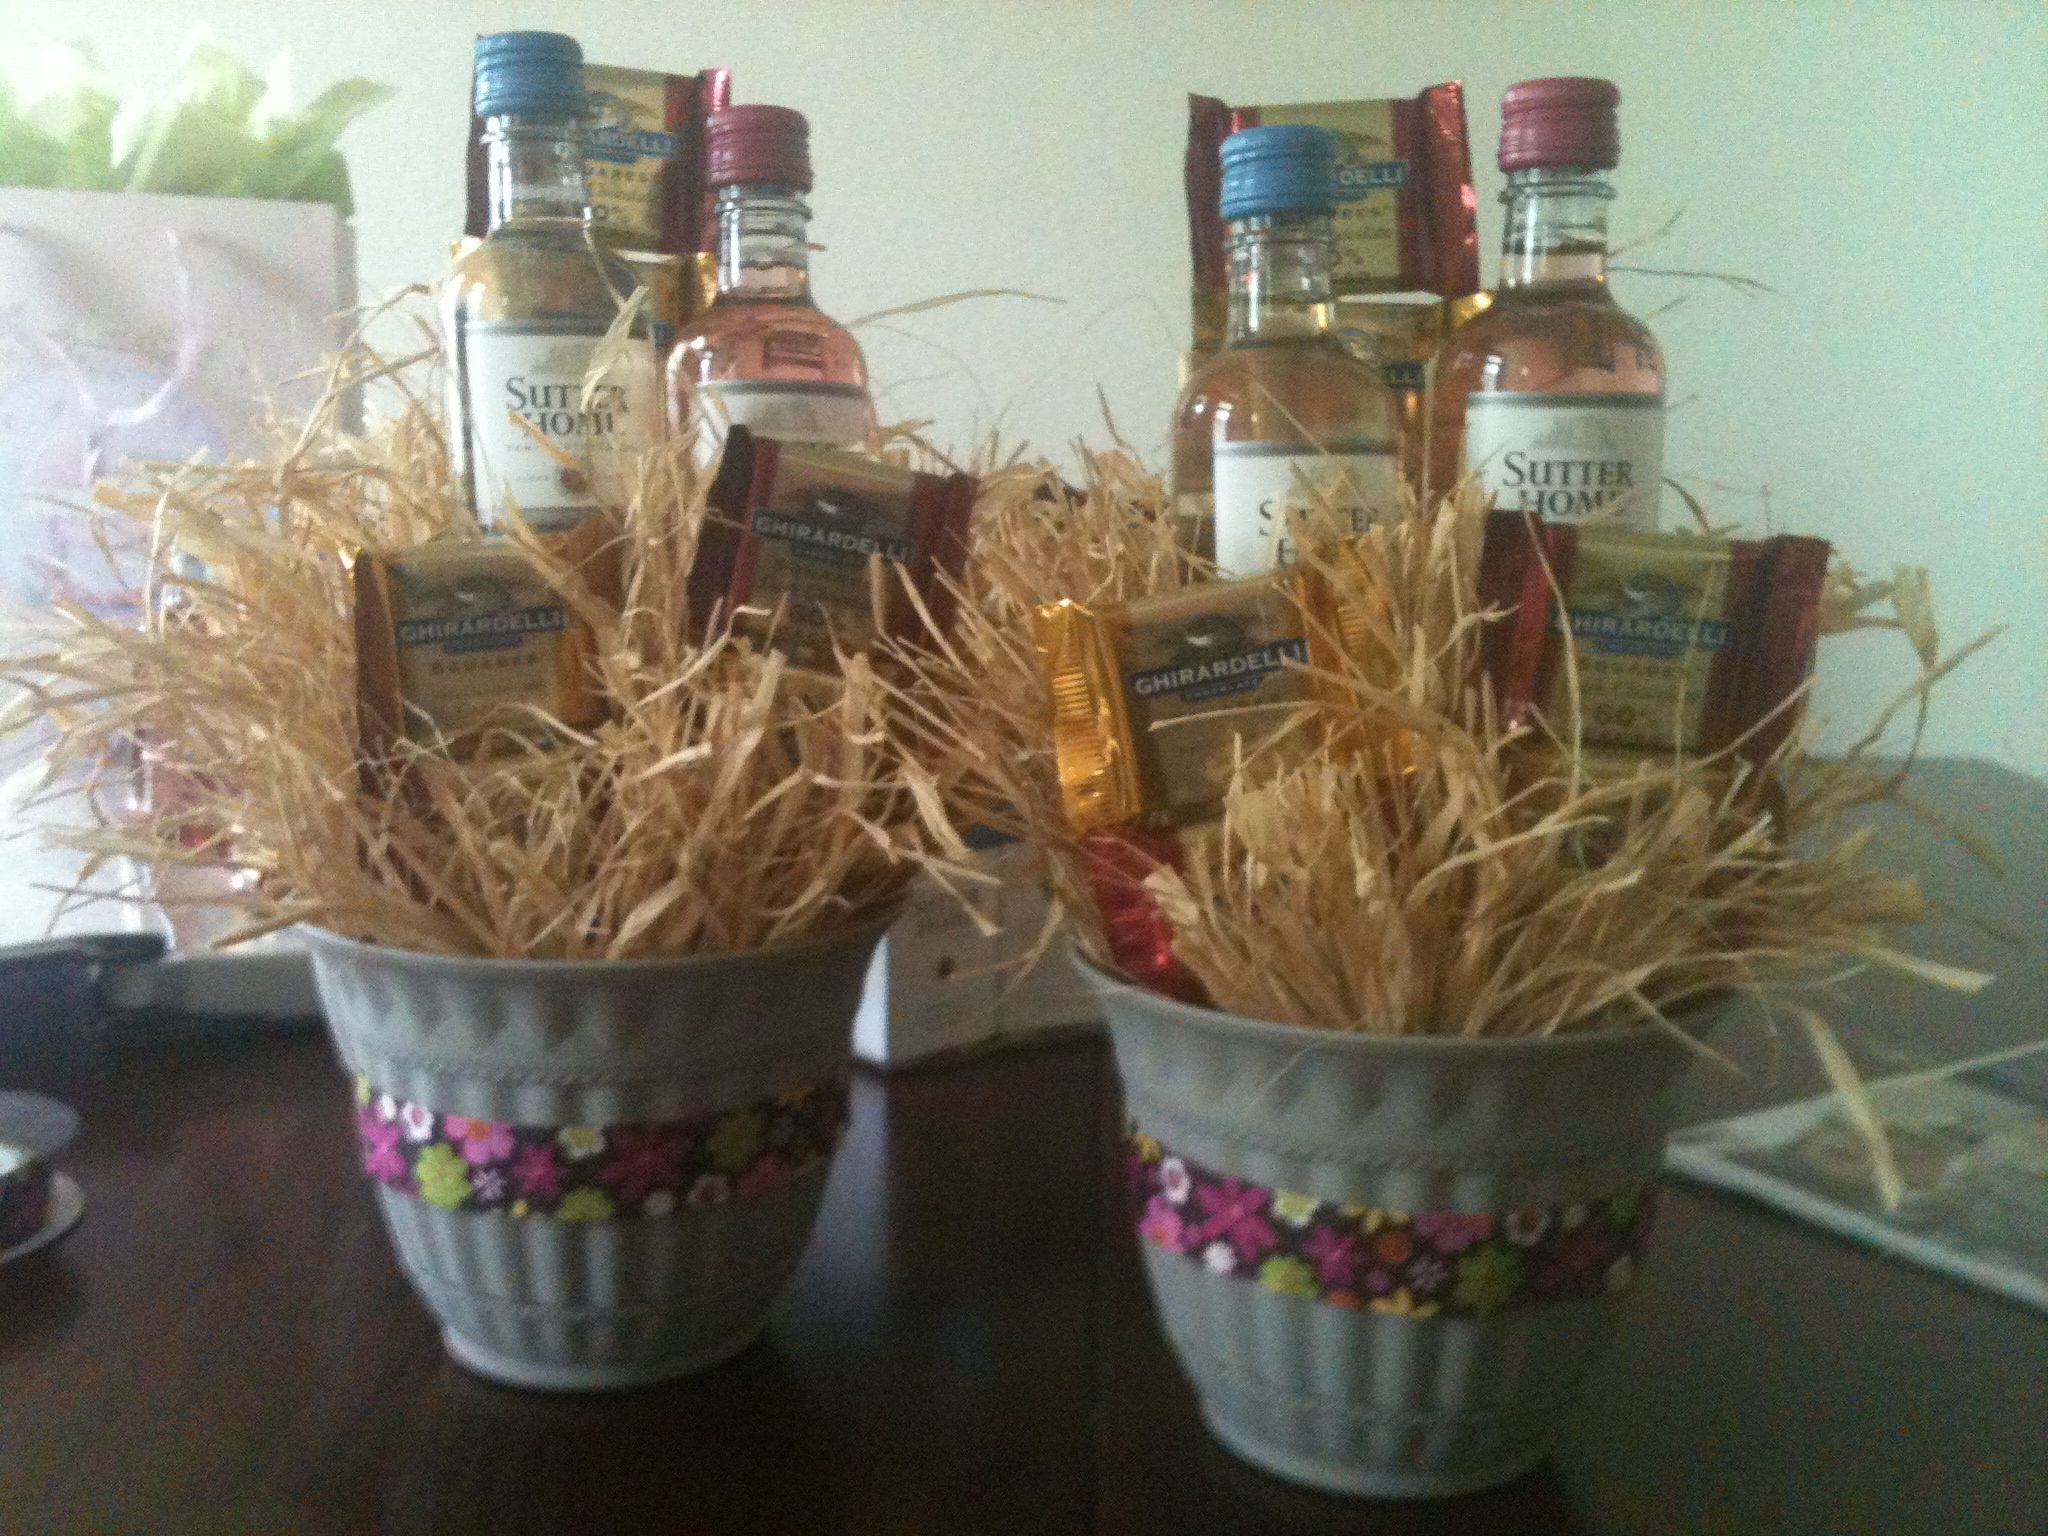 Baby Shower Gift Basket Ideas For Guests  Baby Shower Gift Basket Ideas For Guests – Gift Ftempo